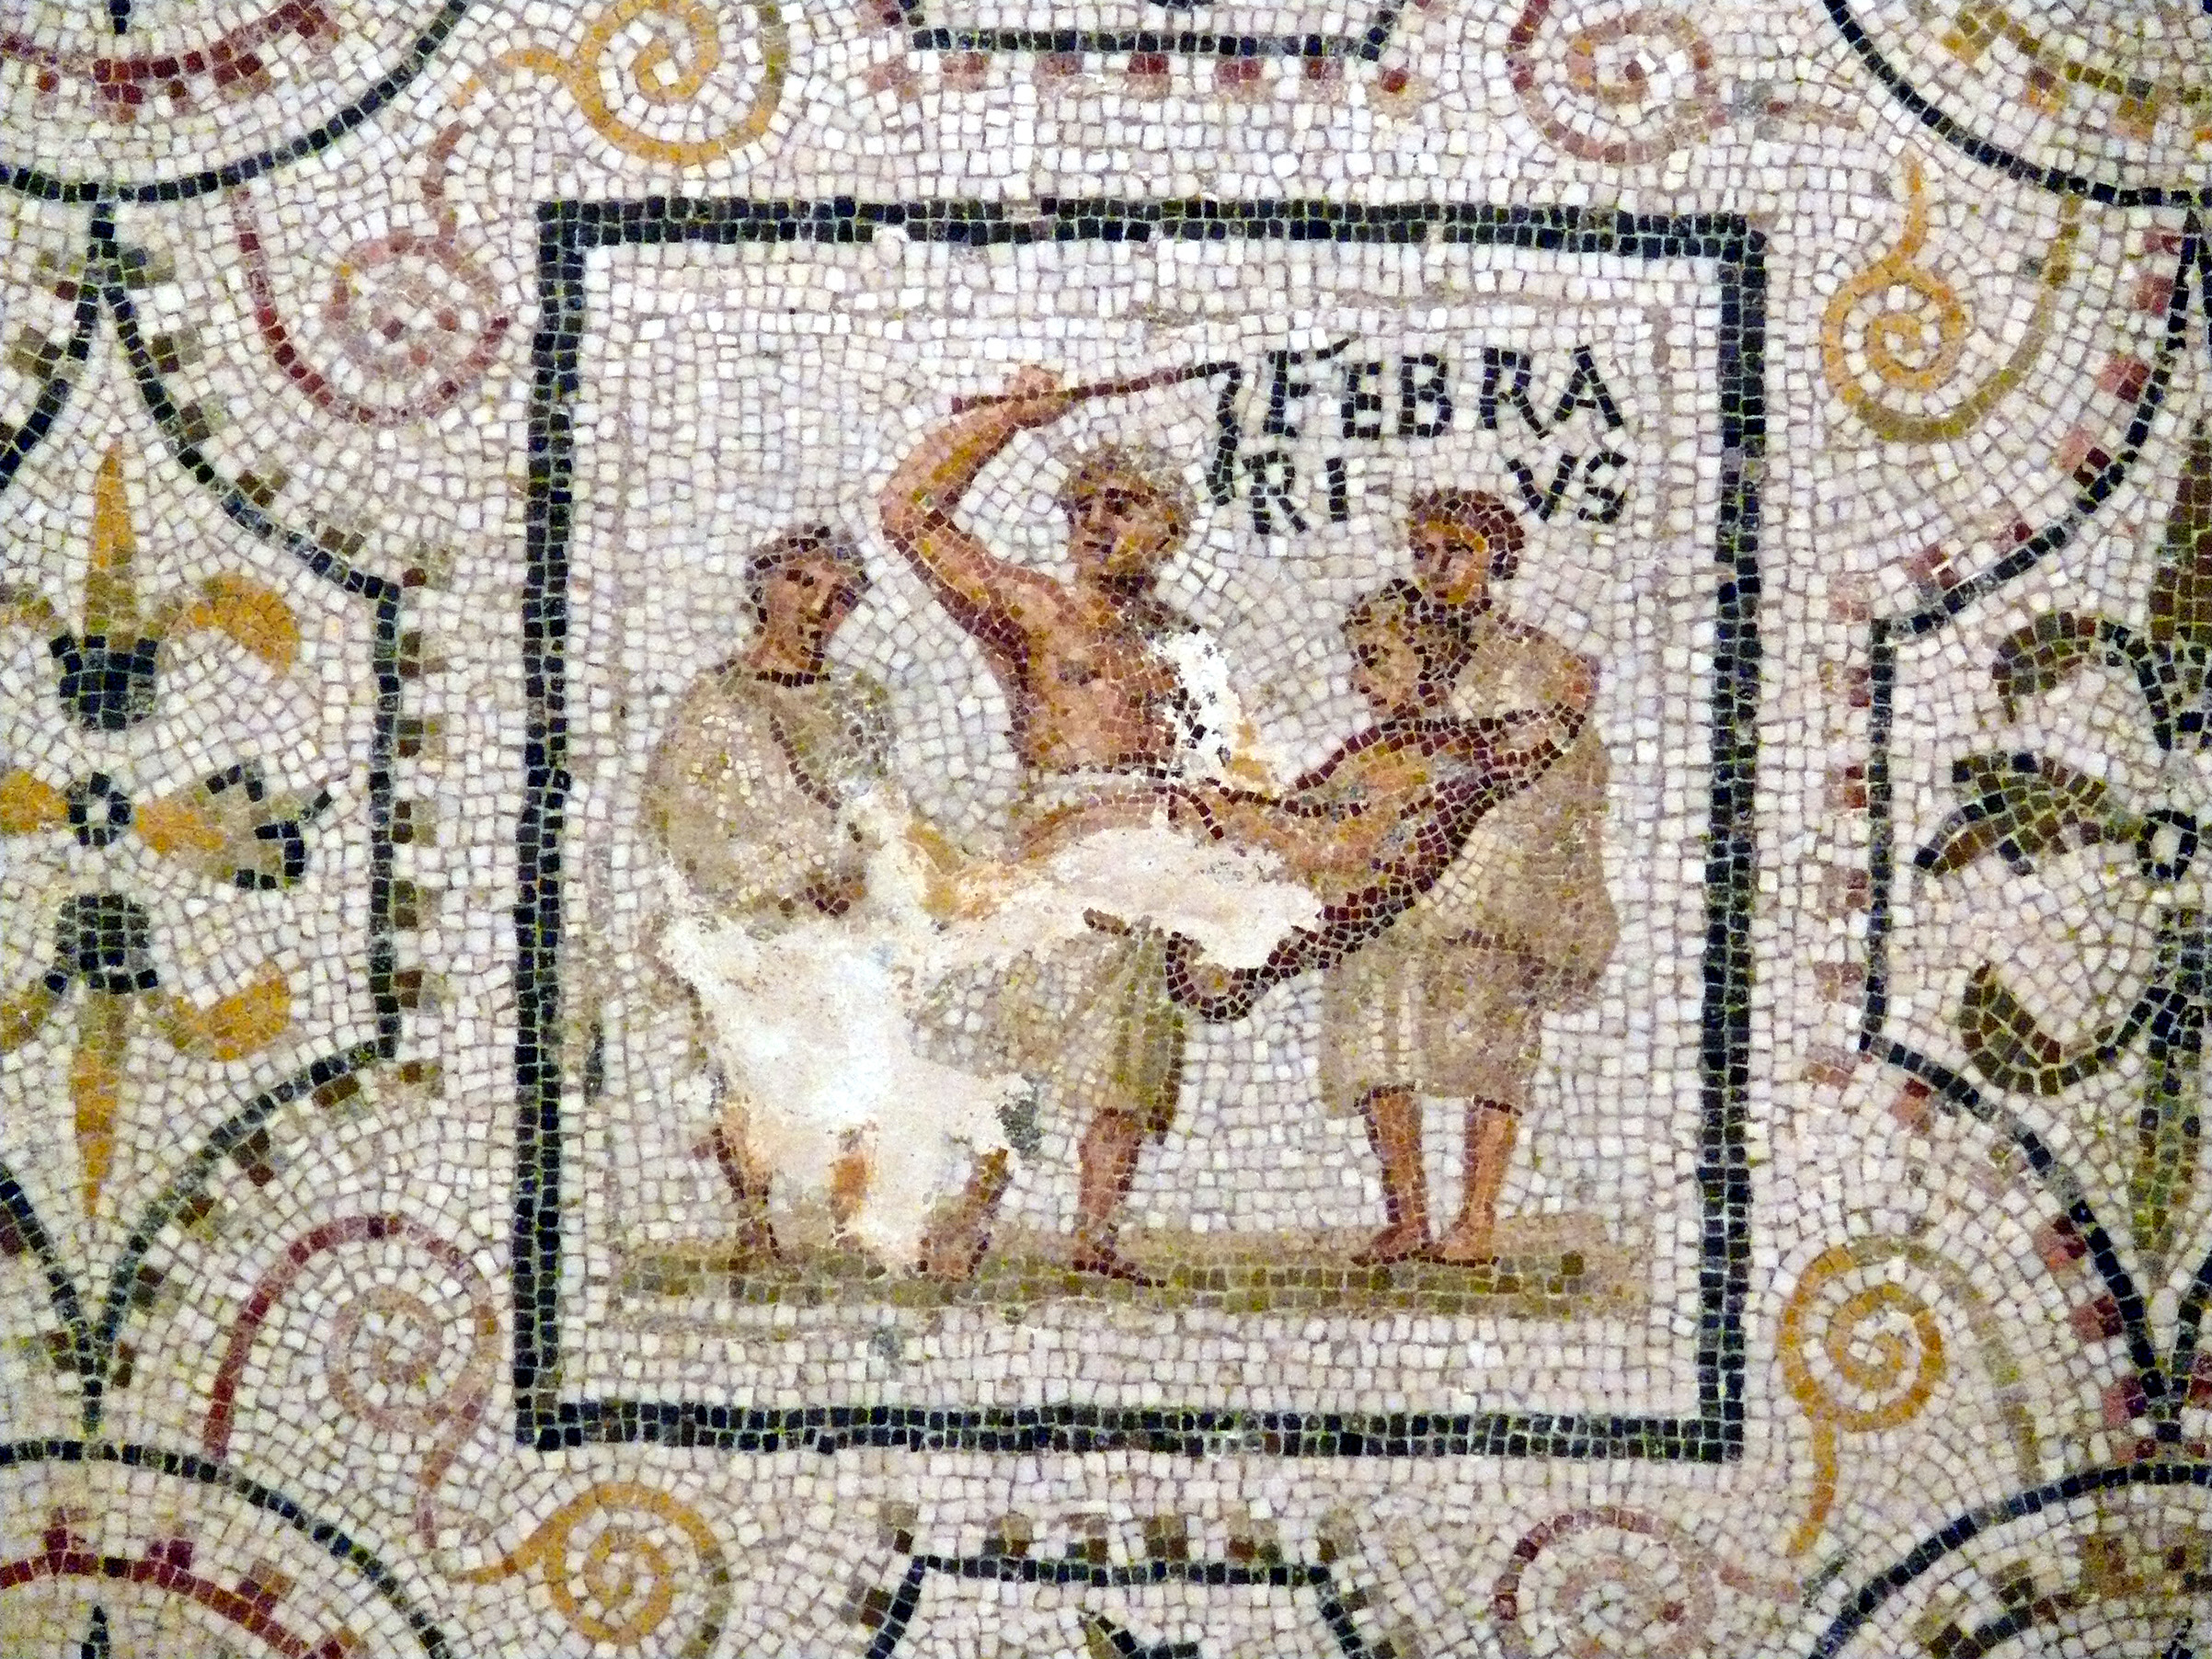 A mosaic depiction of Lupercalia rituals